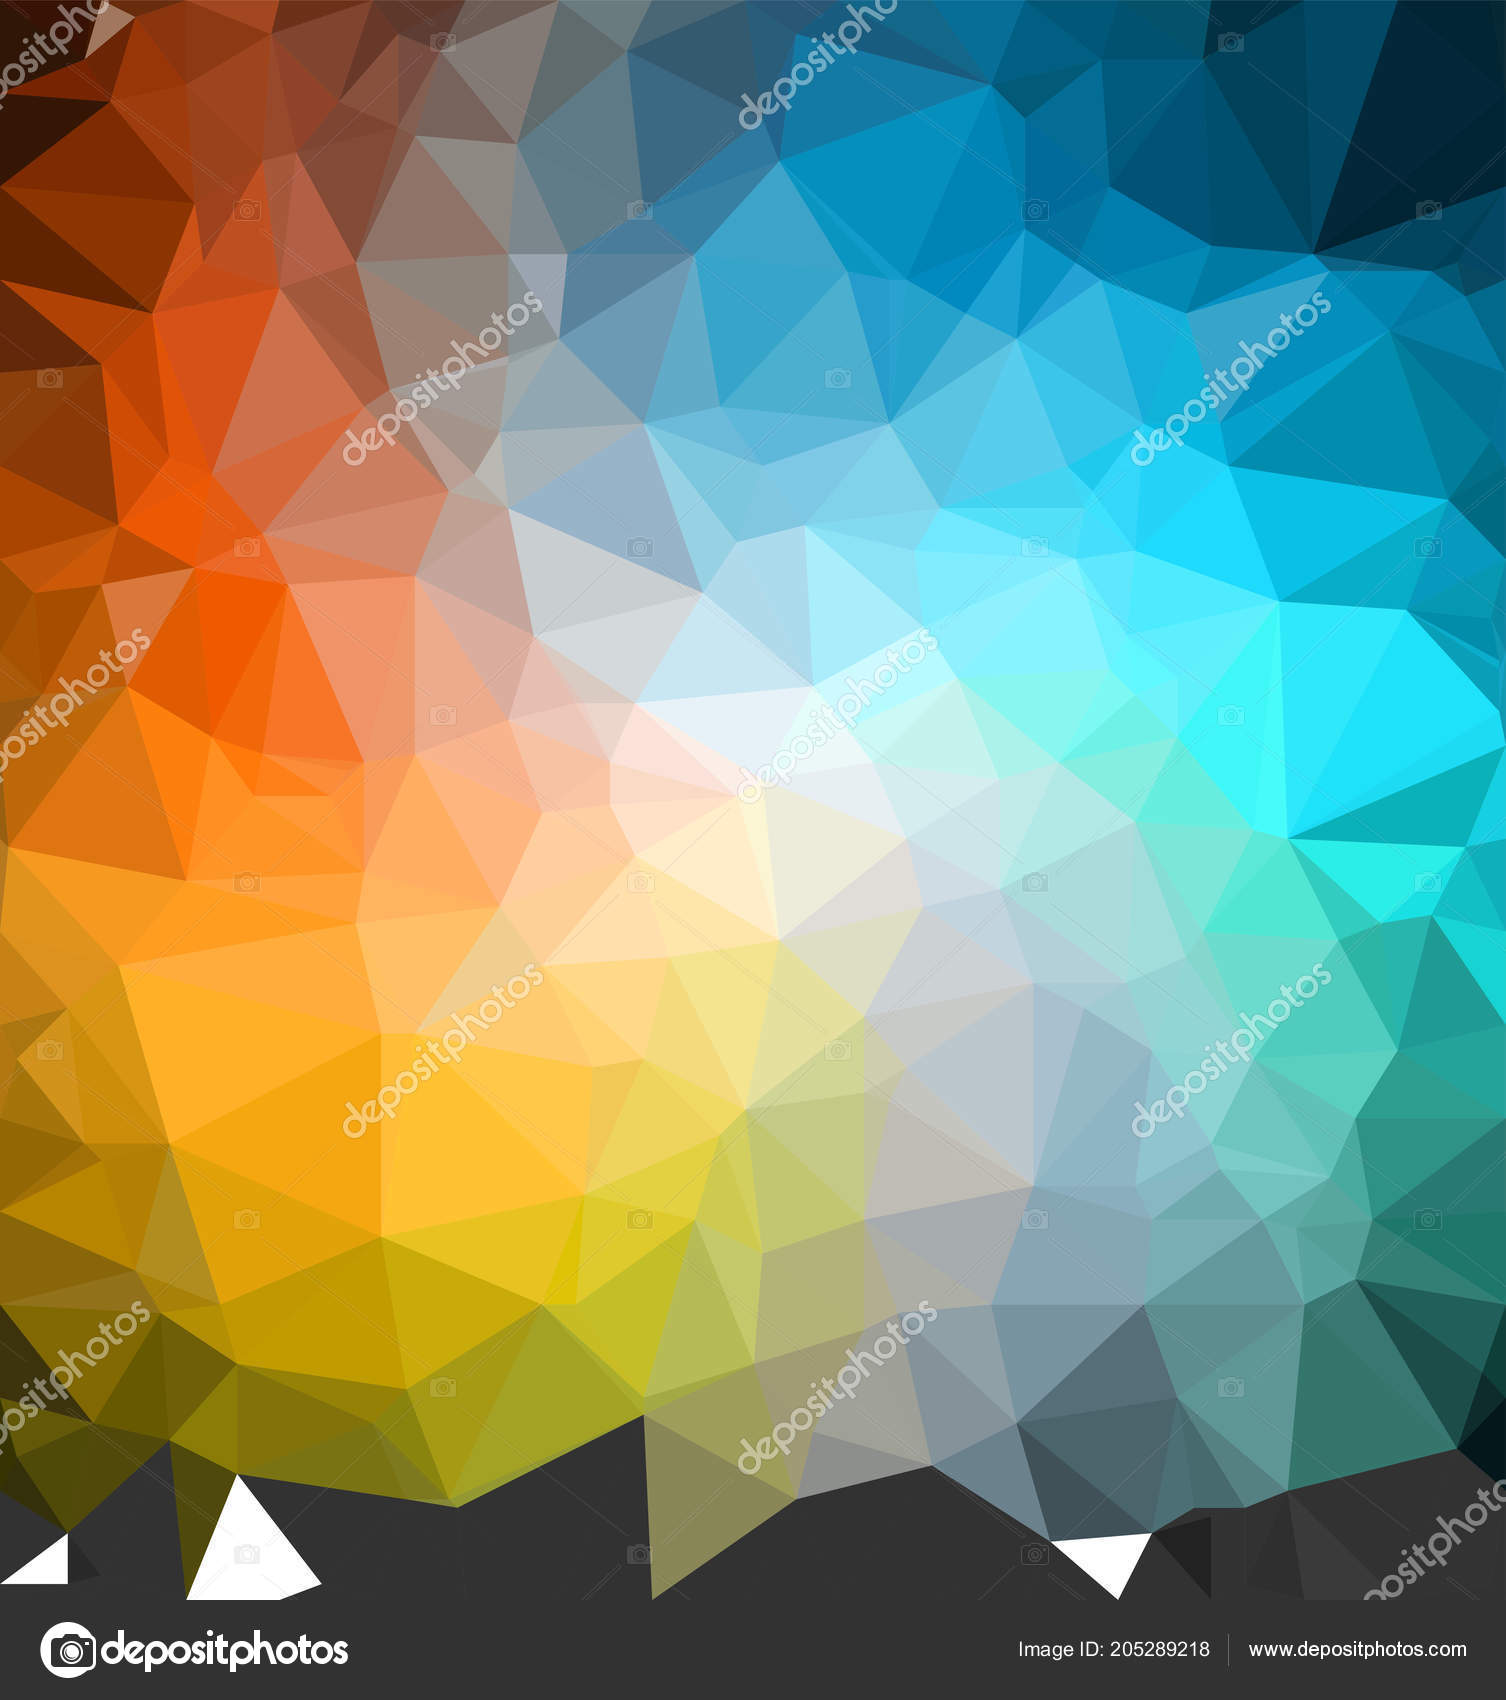 Colorful Cool Backgrounds Colorful Cool Background Banner Triangulation Pattern Stock Vector C Sergantstar 205289218